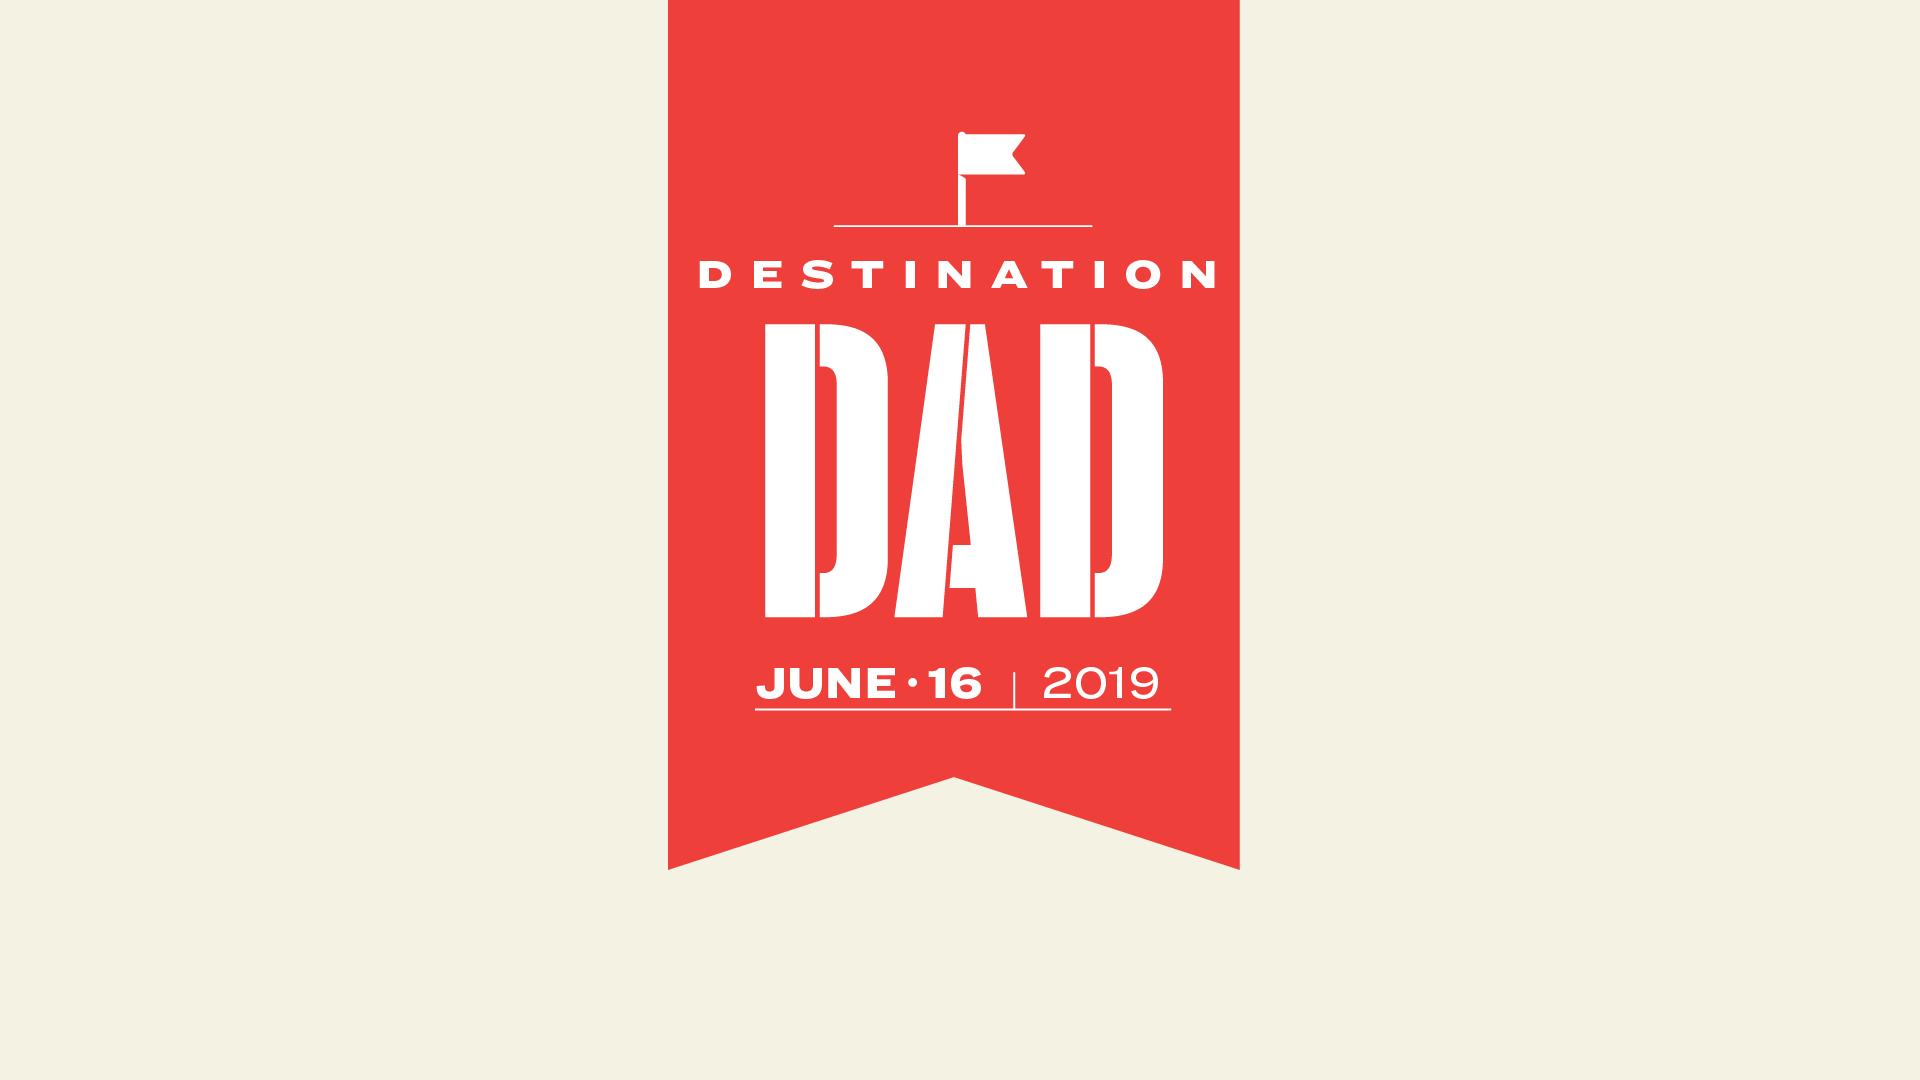 ACA-190530_FATHERS_DAY_BOARDS_cv_v05-16.png